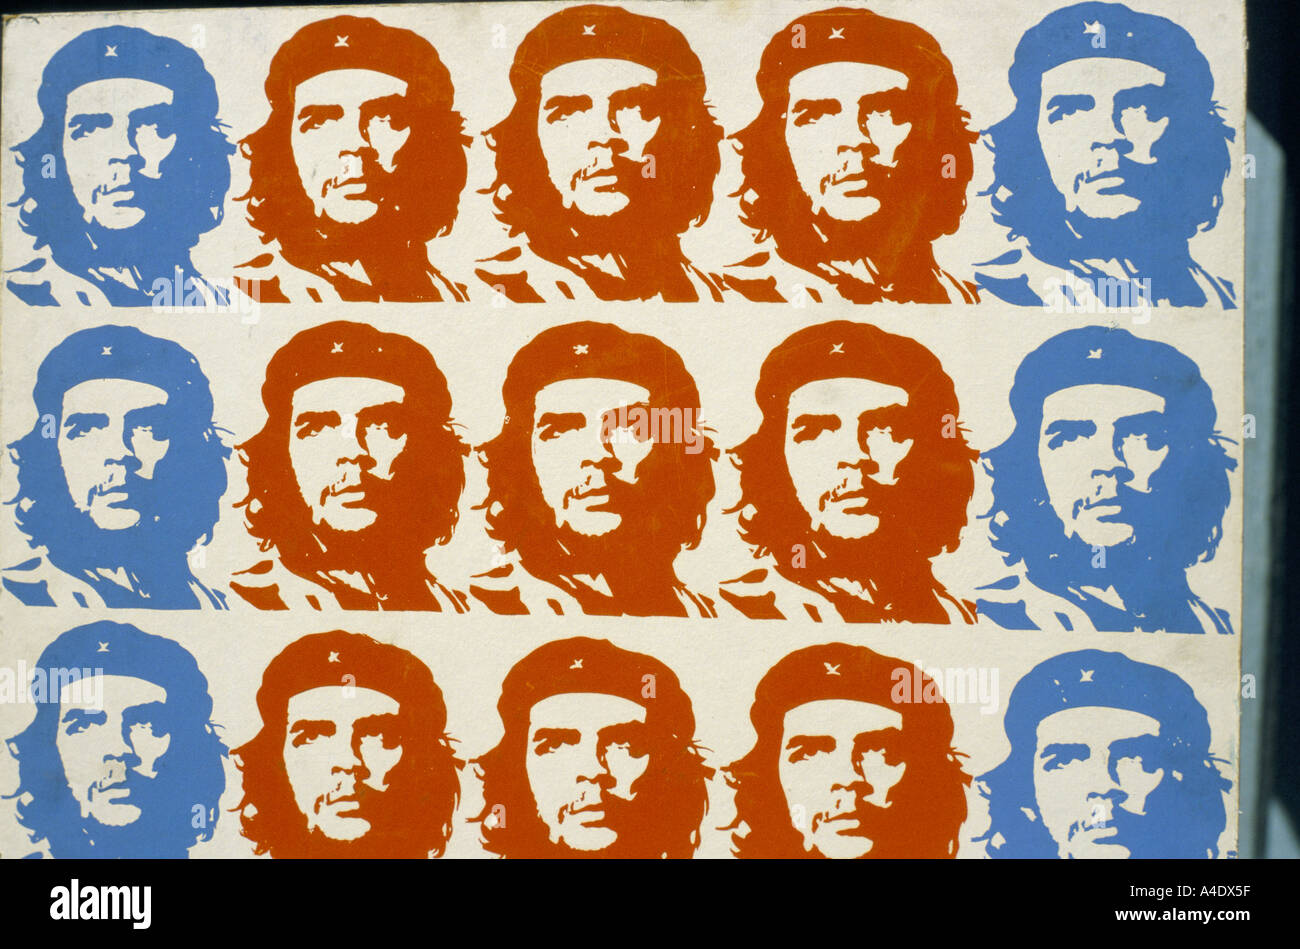 Repetition of che guevara portrait in red and blue on a wall in Havana, Cuba - Stock Image